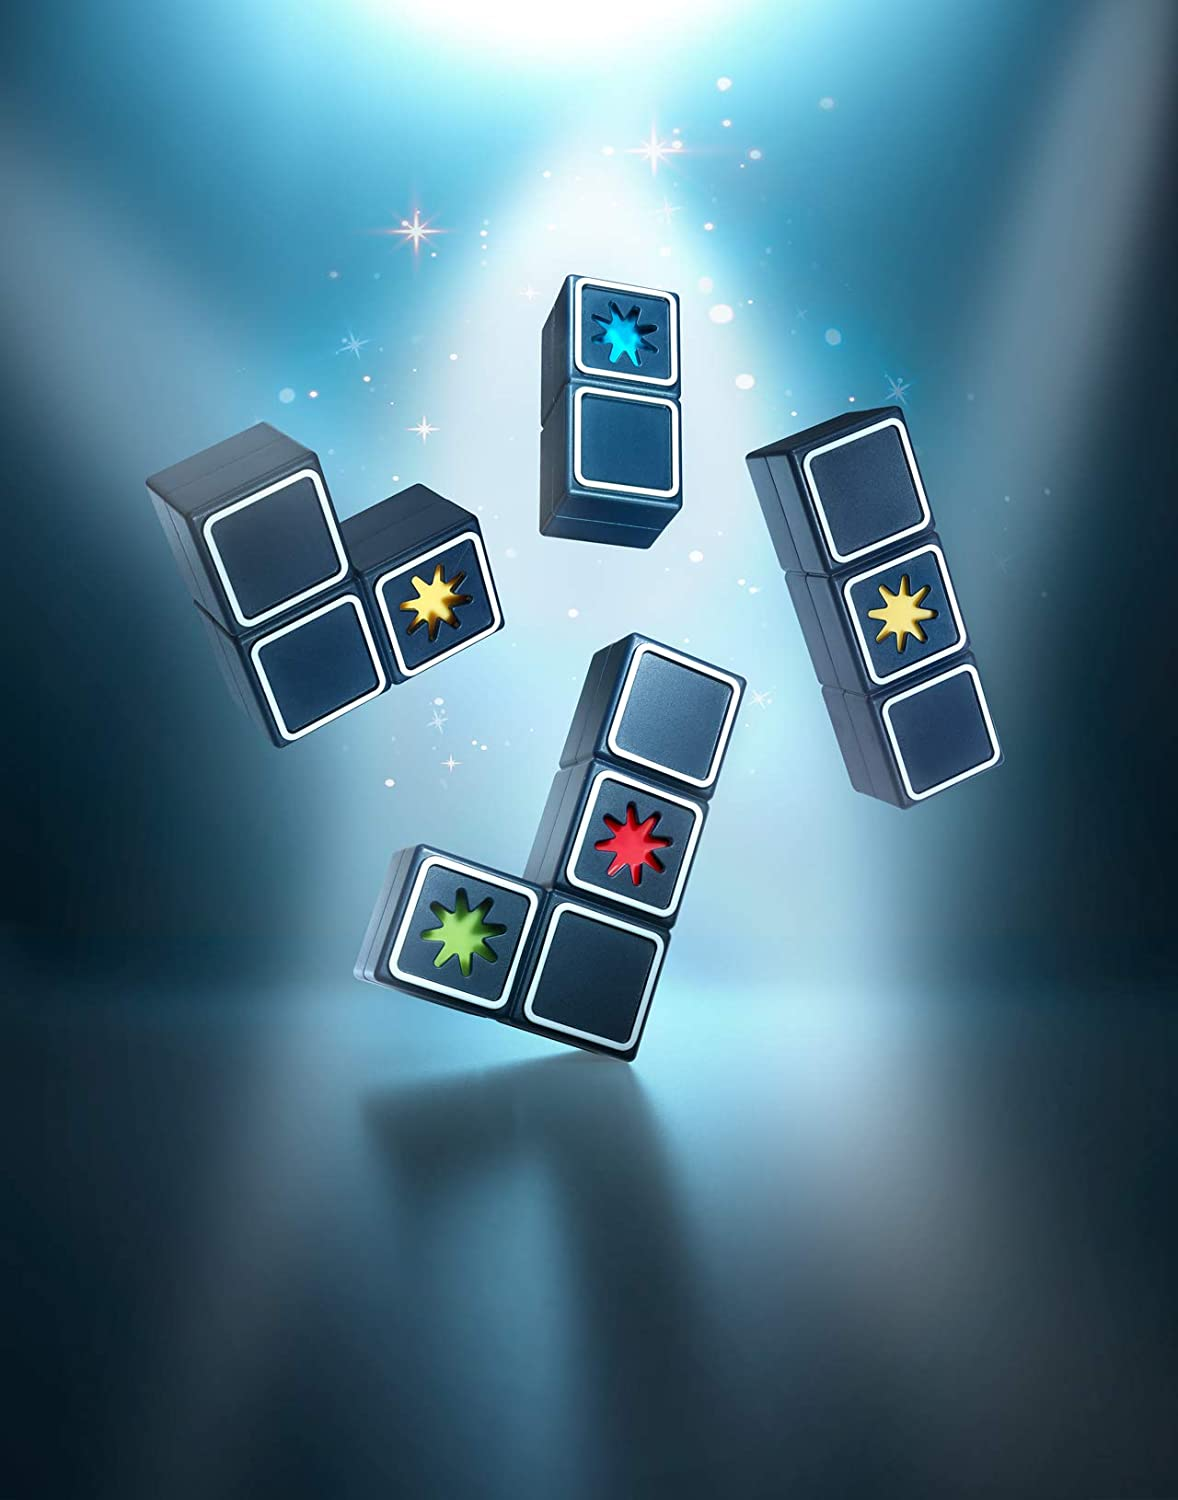 SmartGames Shooting Stars 3D Skill-Building Puzzle Game Featuring 60 Challenges for Ages 6+